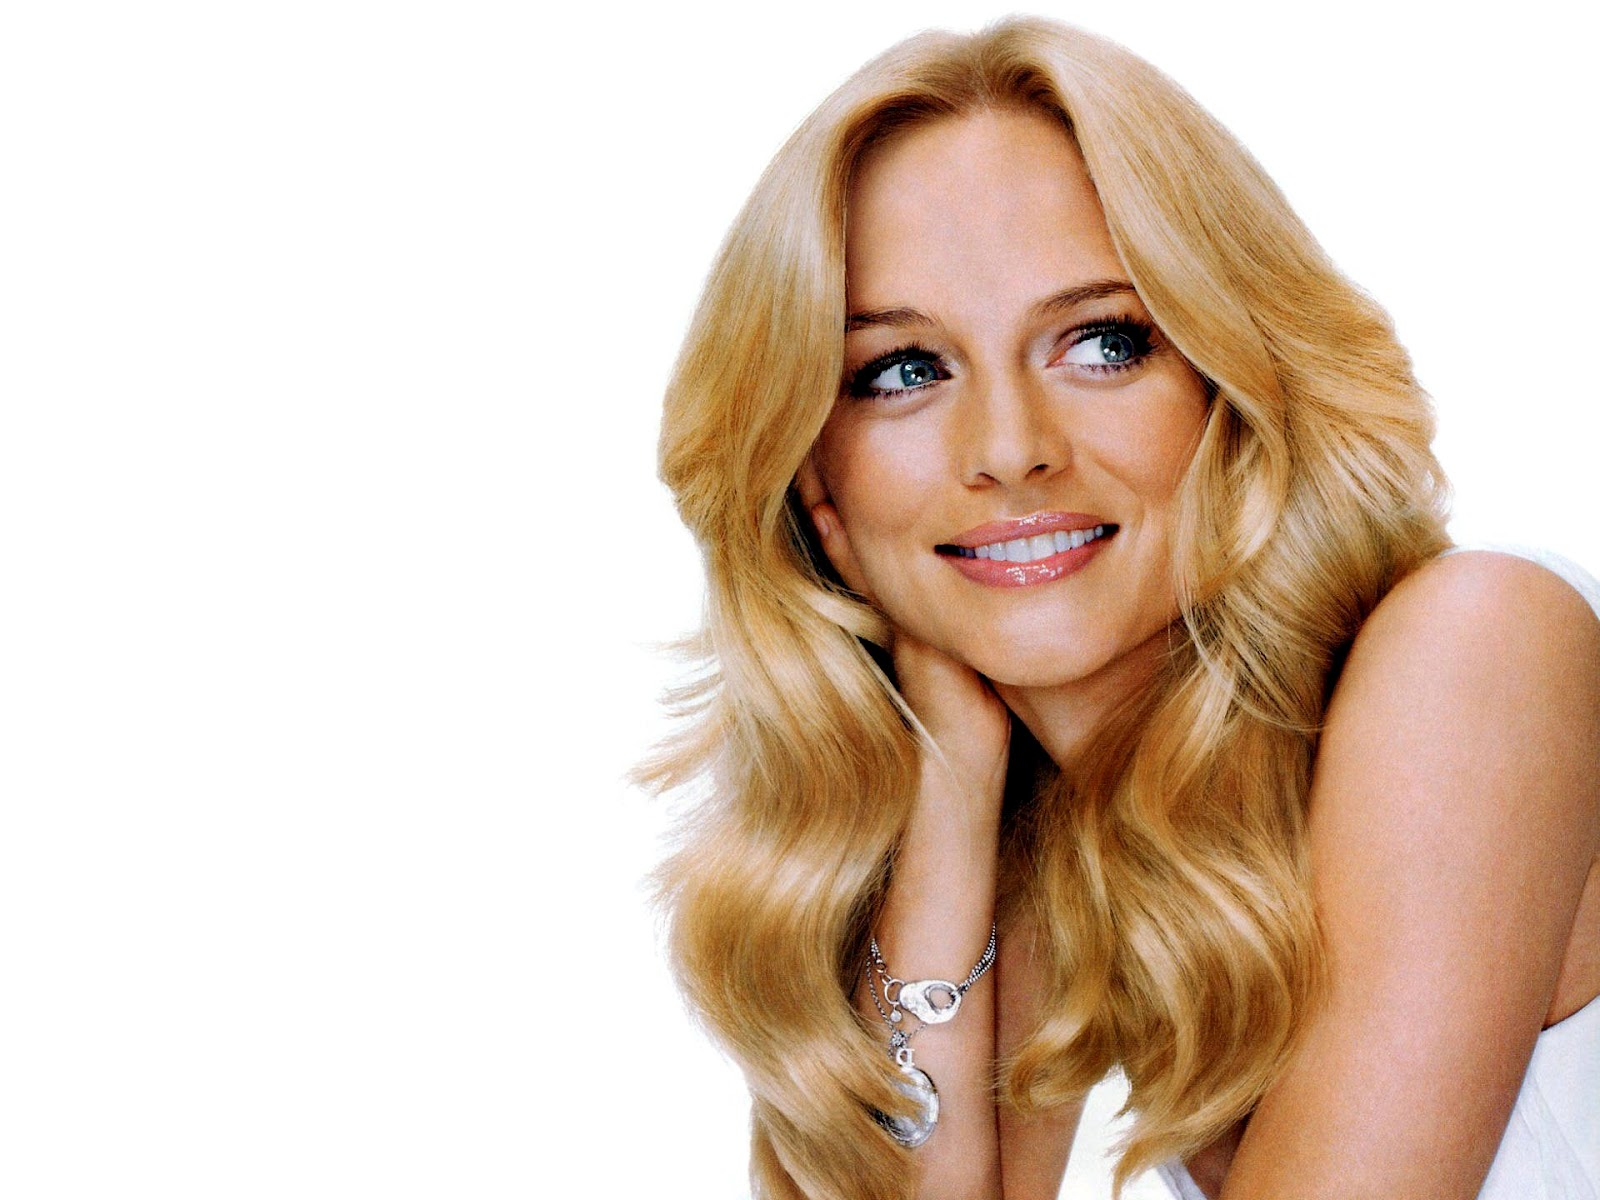 wallpaper heather graham - photo #2